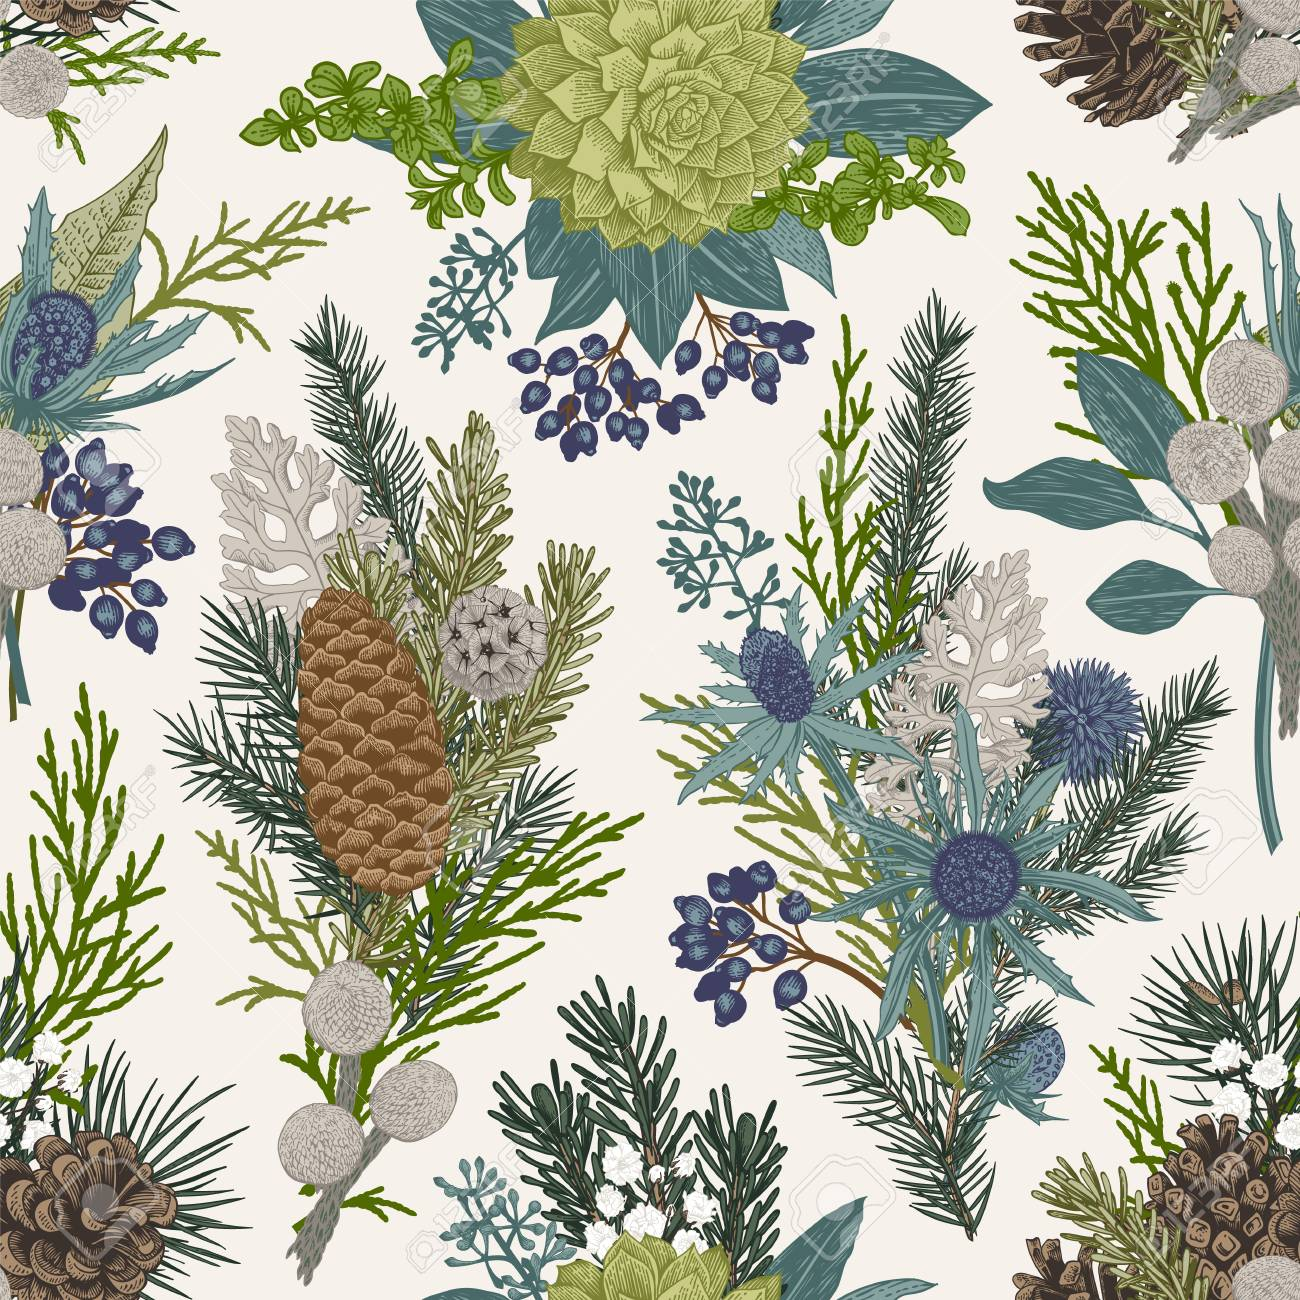 Seamless floral pattern. Winter Christmas decor. Evergreen, cone, succulents, flowers, leaves, berries. Botanical vector vintage illustration. - 89747401